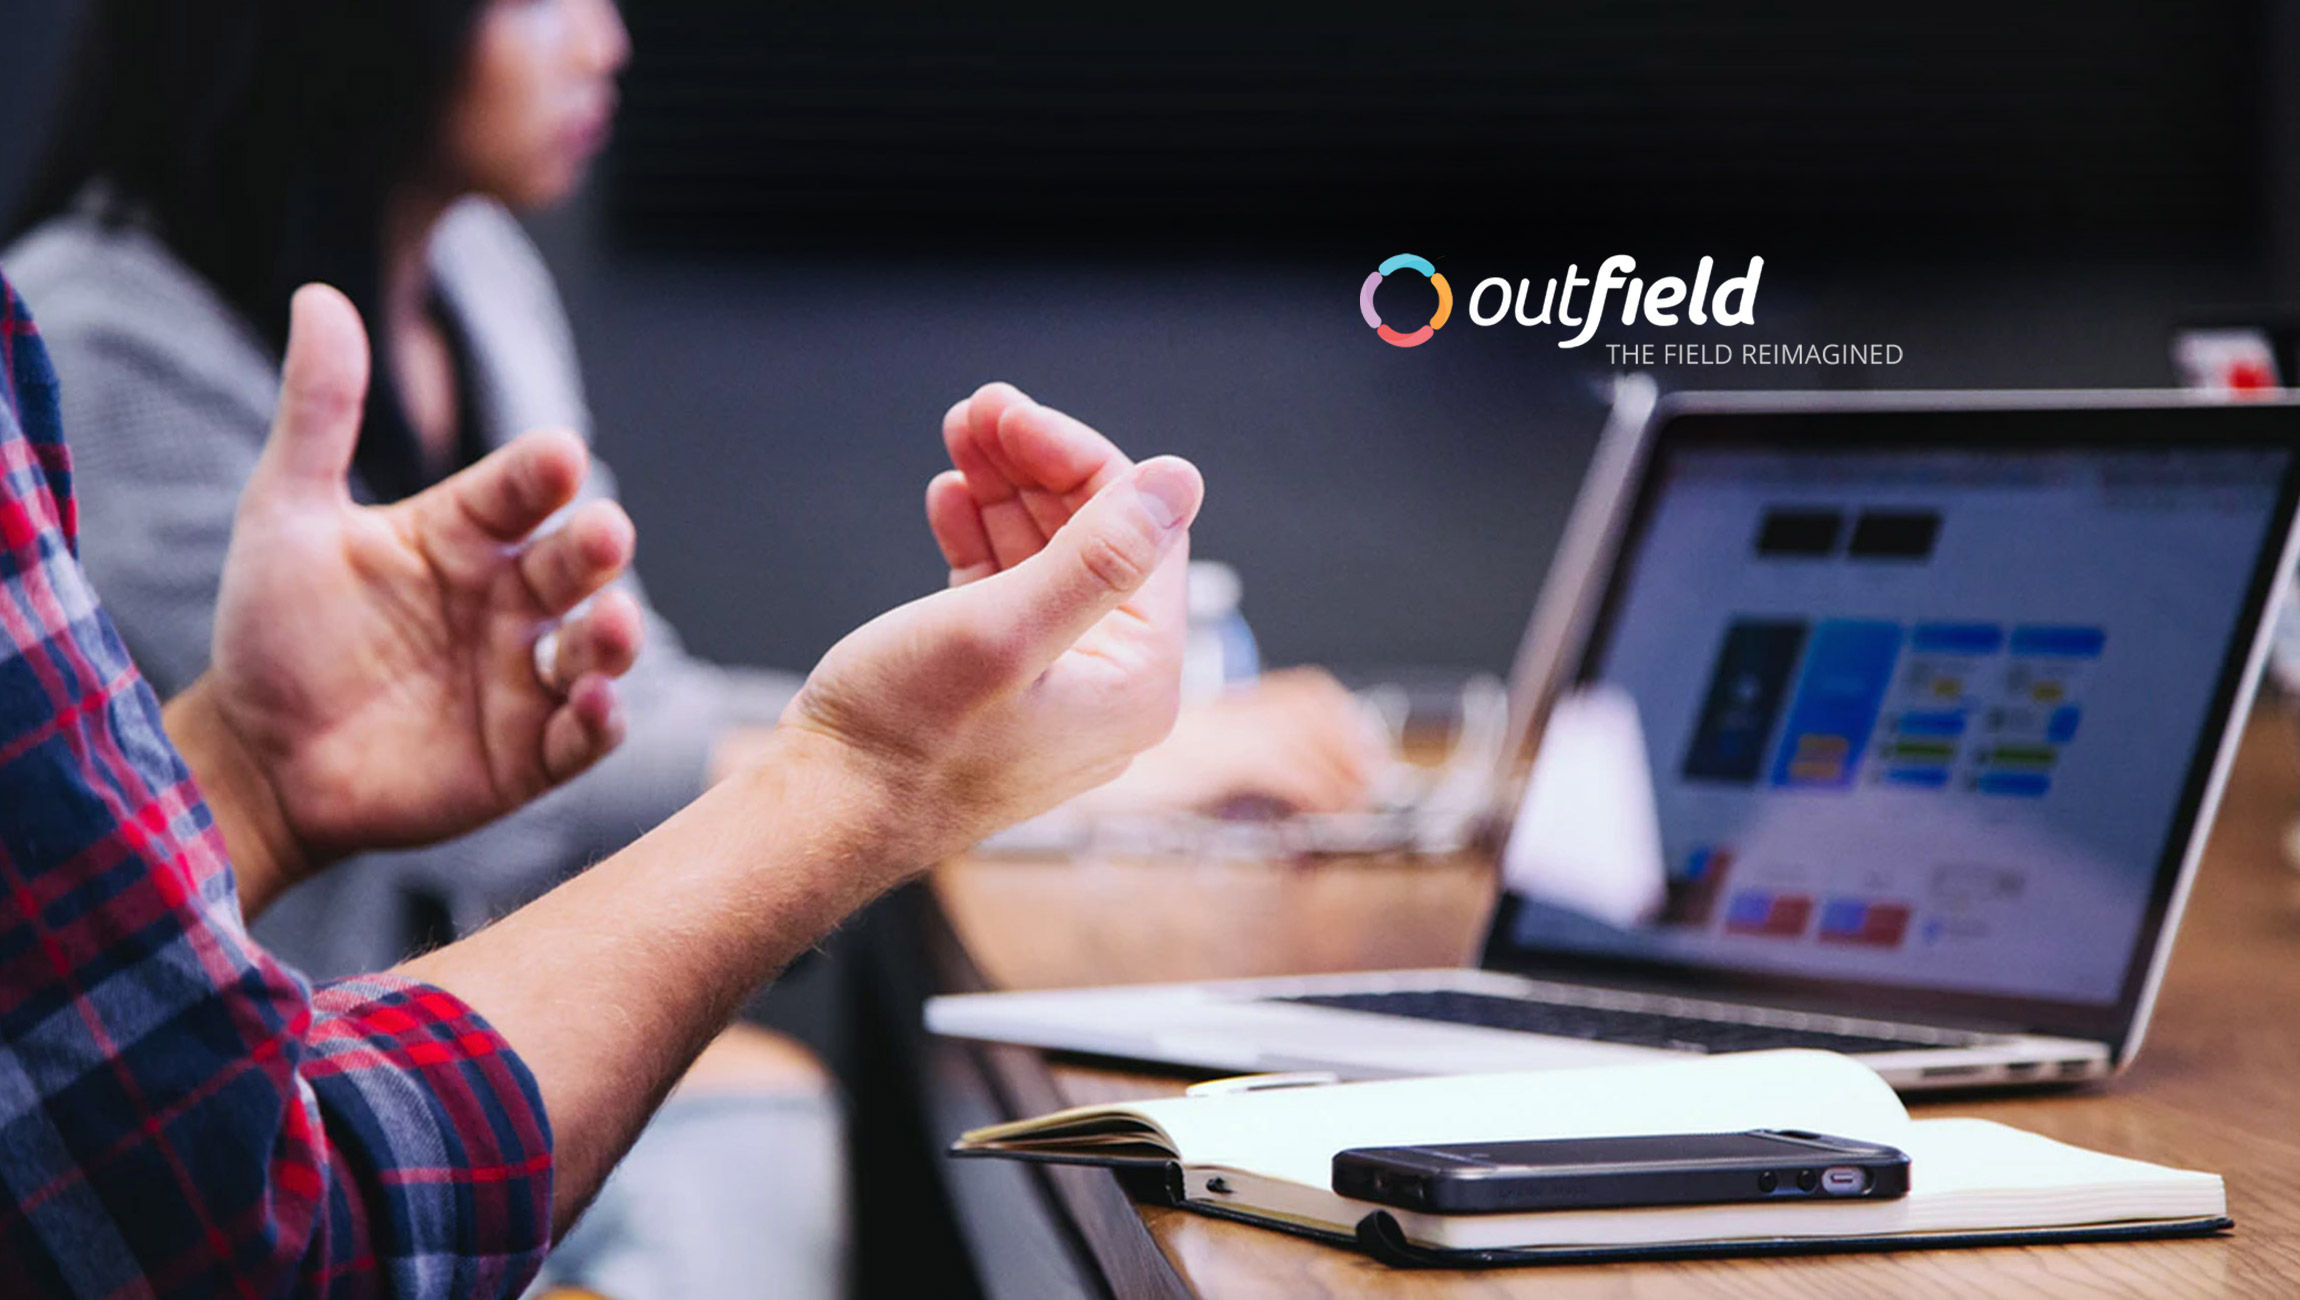 Outfield Launches Social Media Community to Champion Sales Professionals